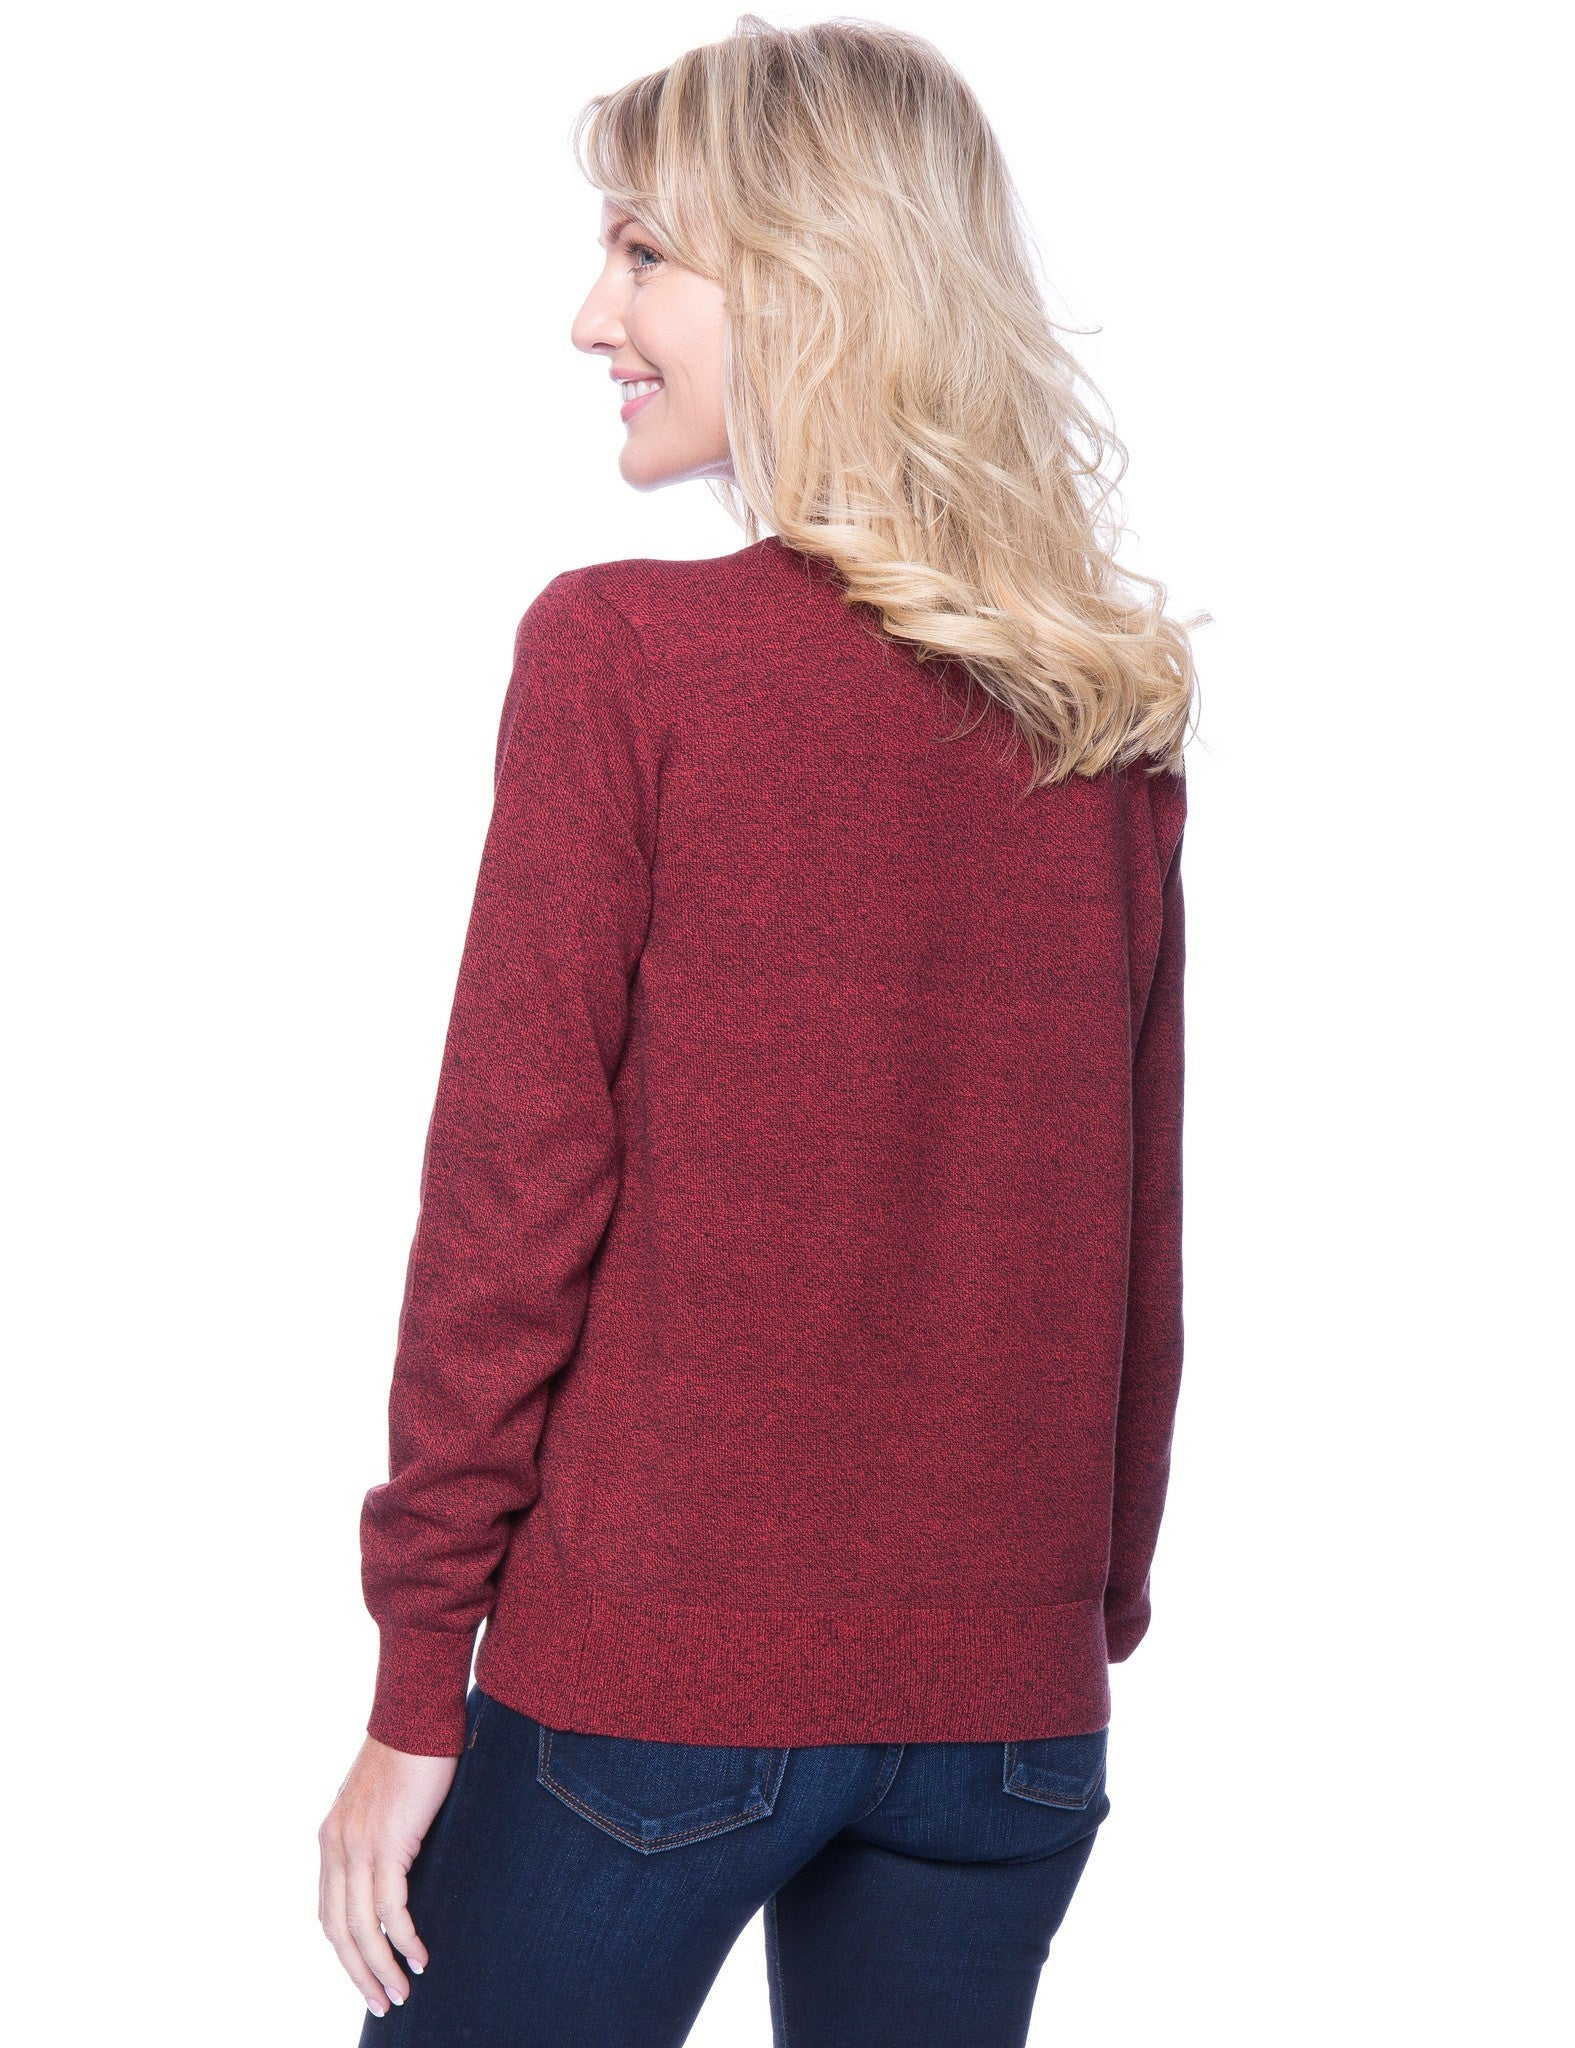 Tocco Reale Women's Premium Cotton Crew Neck Sweater - Marl Red/Black